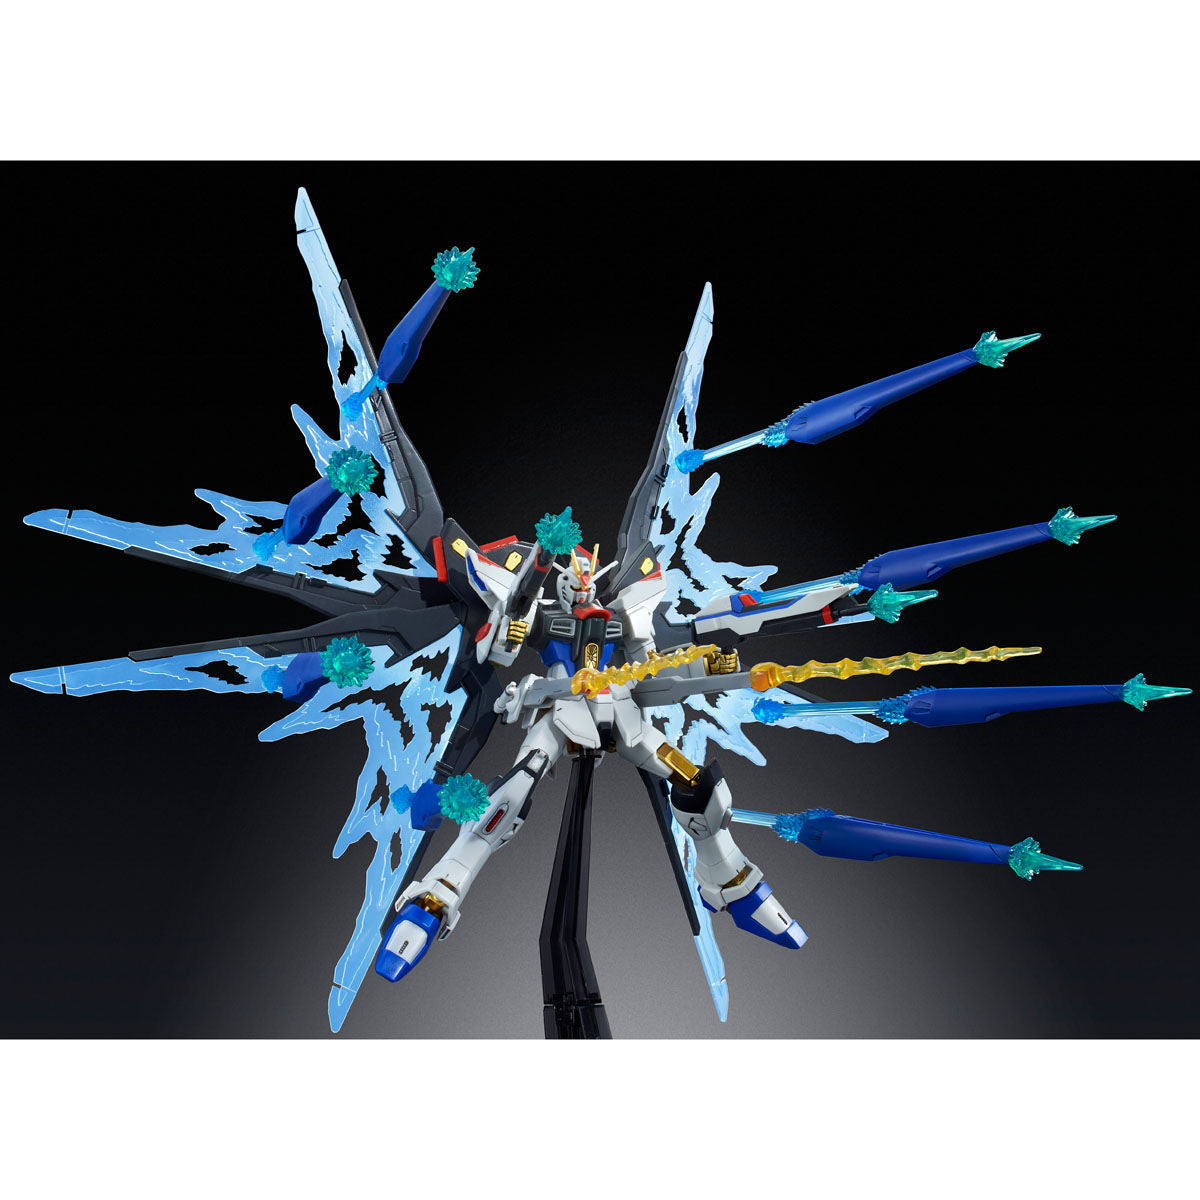 P-Bandai: HGCE 1/144 Strike Freedom Gundam Plus Wing of Light DX Edition [End of December]